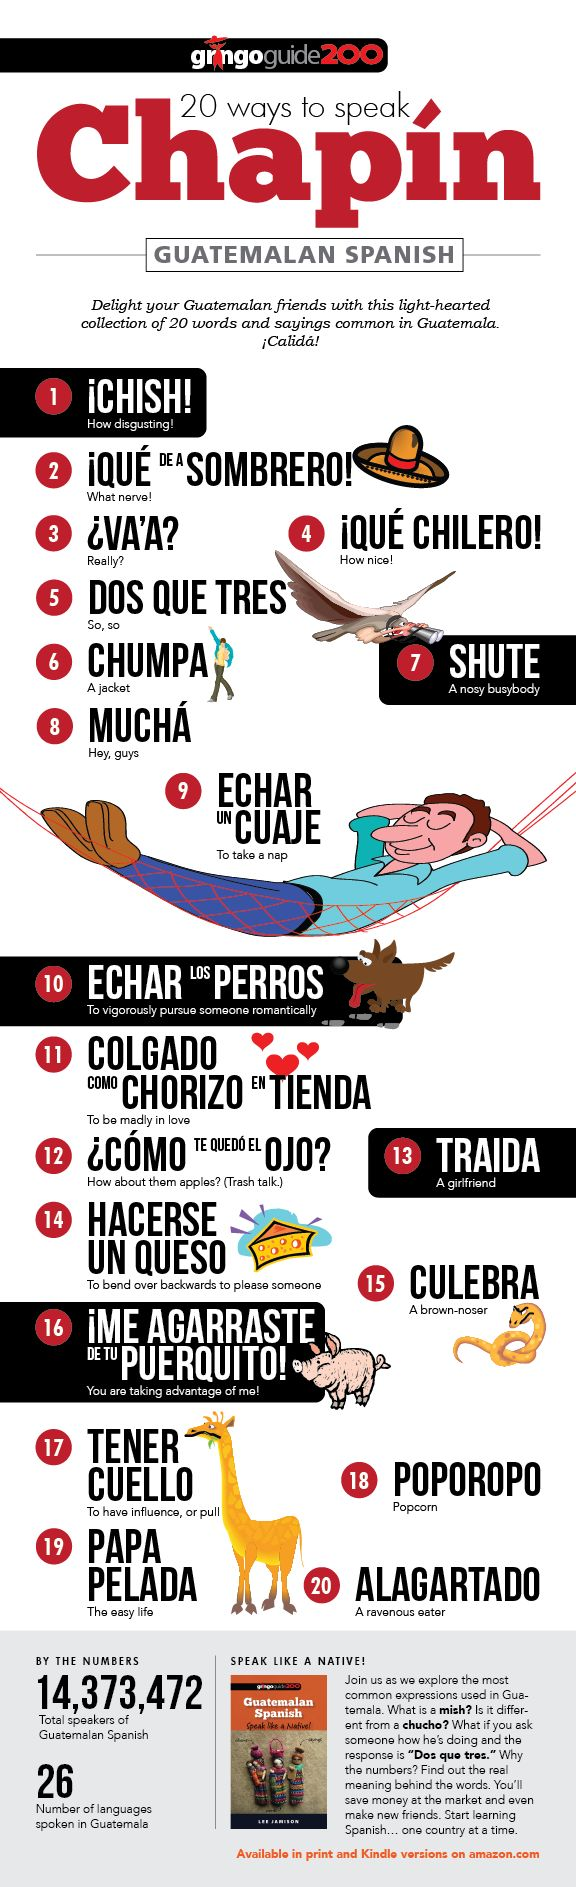 #Infographic 20 Ways to Speak Chapín | How can you make your Spanish more Guatemalan? The following infographic will get you started. Enjoy! #Guatemala @wendalynsanchez c'est vrai? (es verdad?)